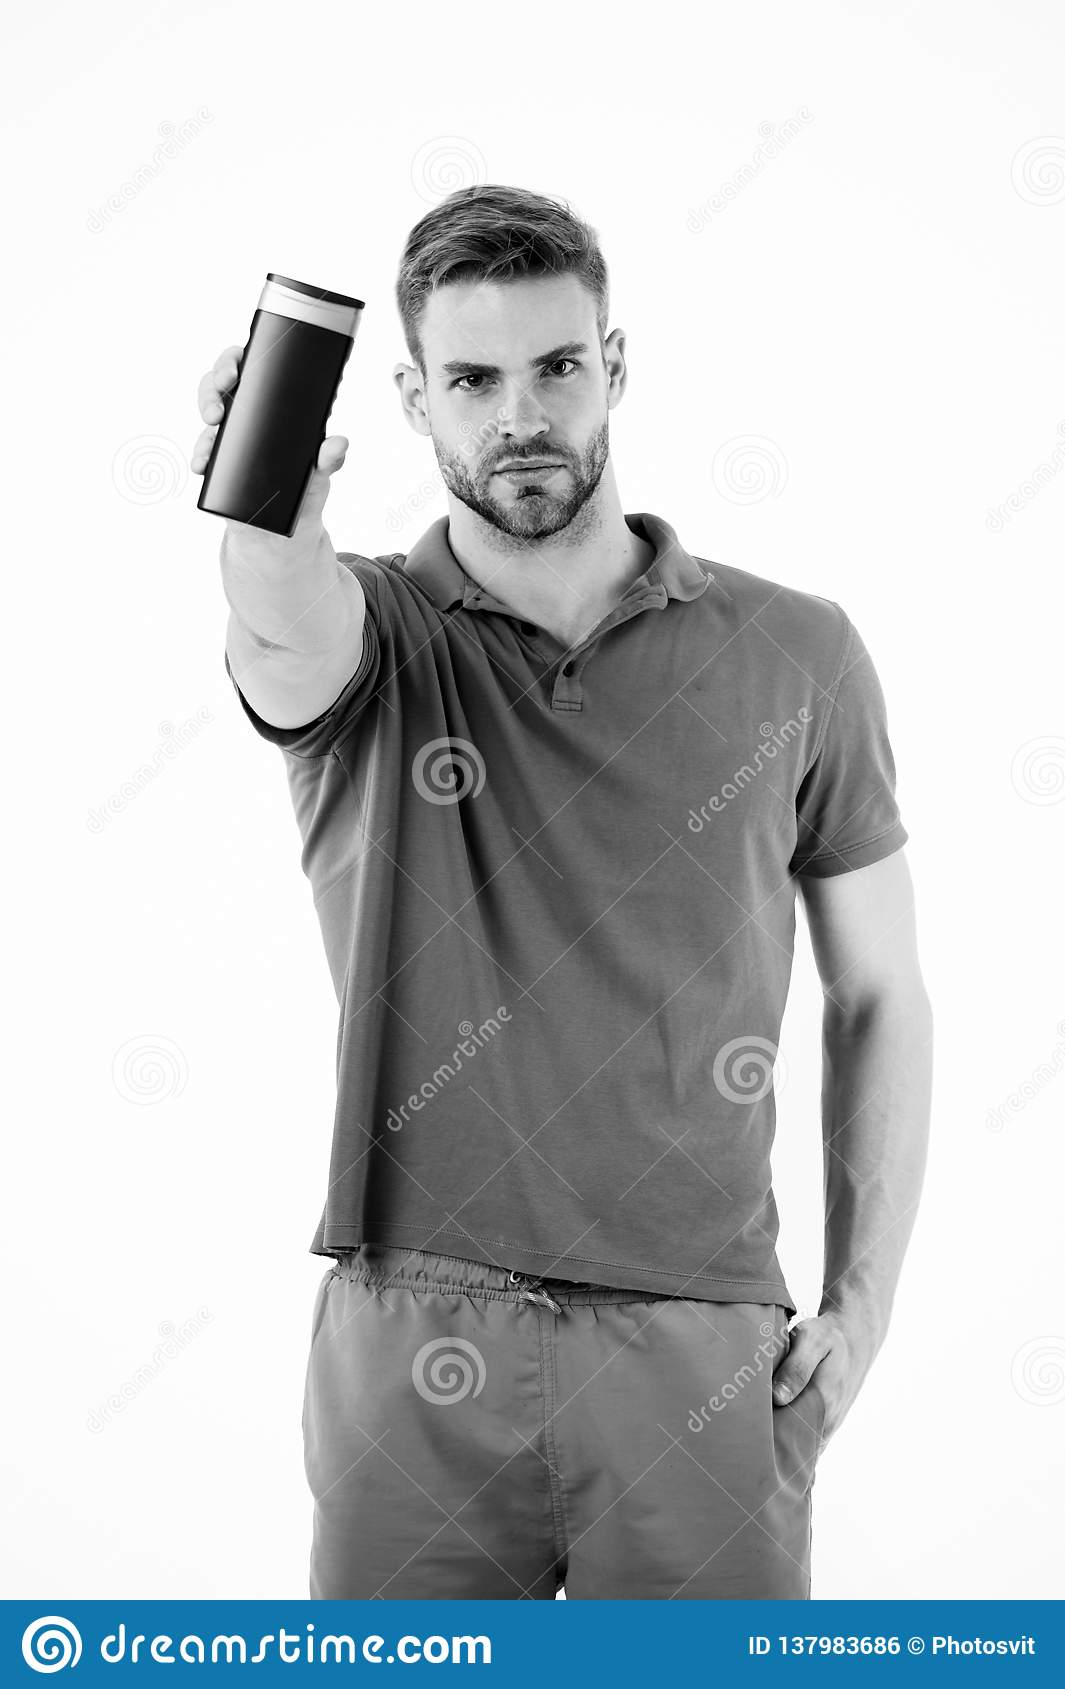 Guy handsome use popular cosmetic or hygienic shampoo product. Man show his favorite shampoo conditioner for hair. Guy